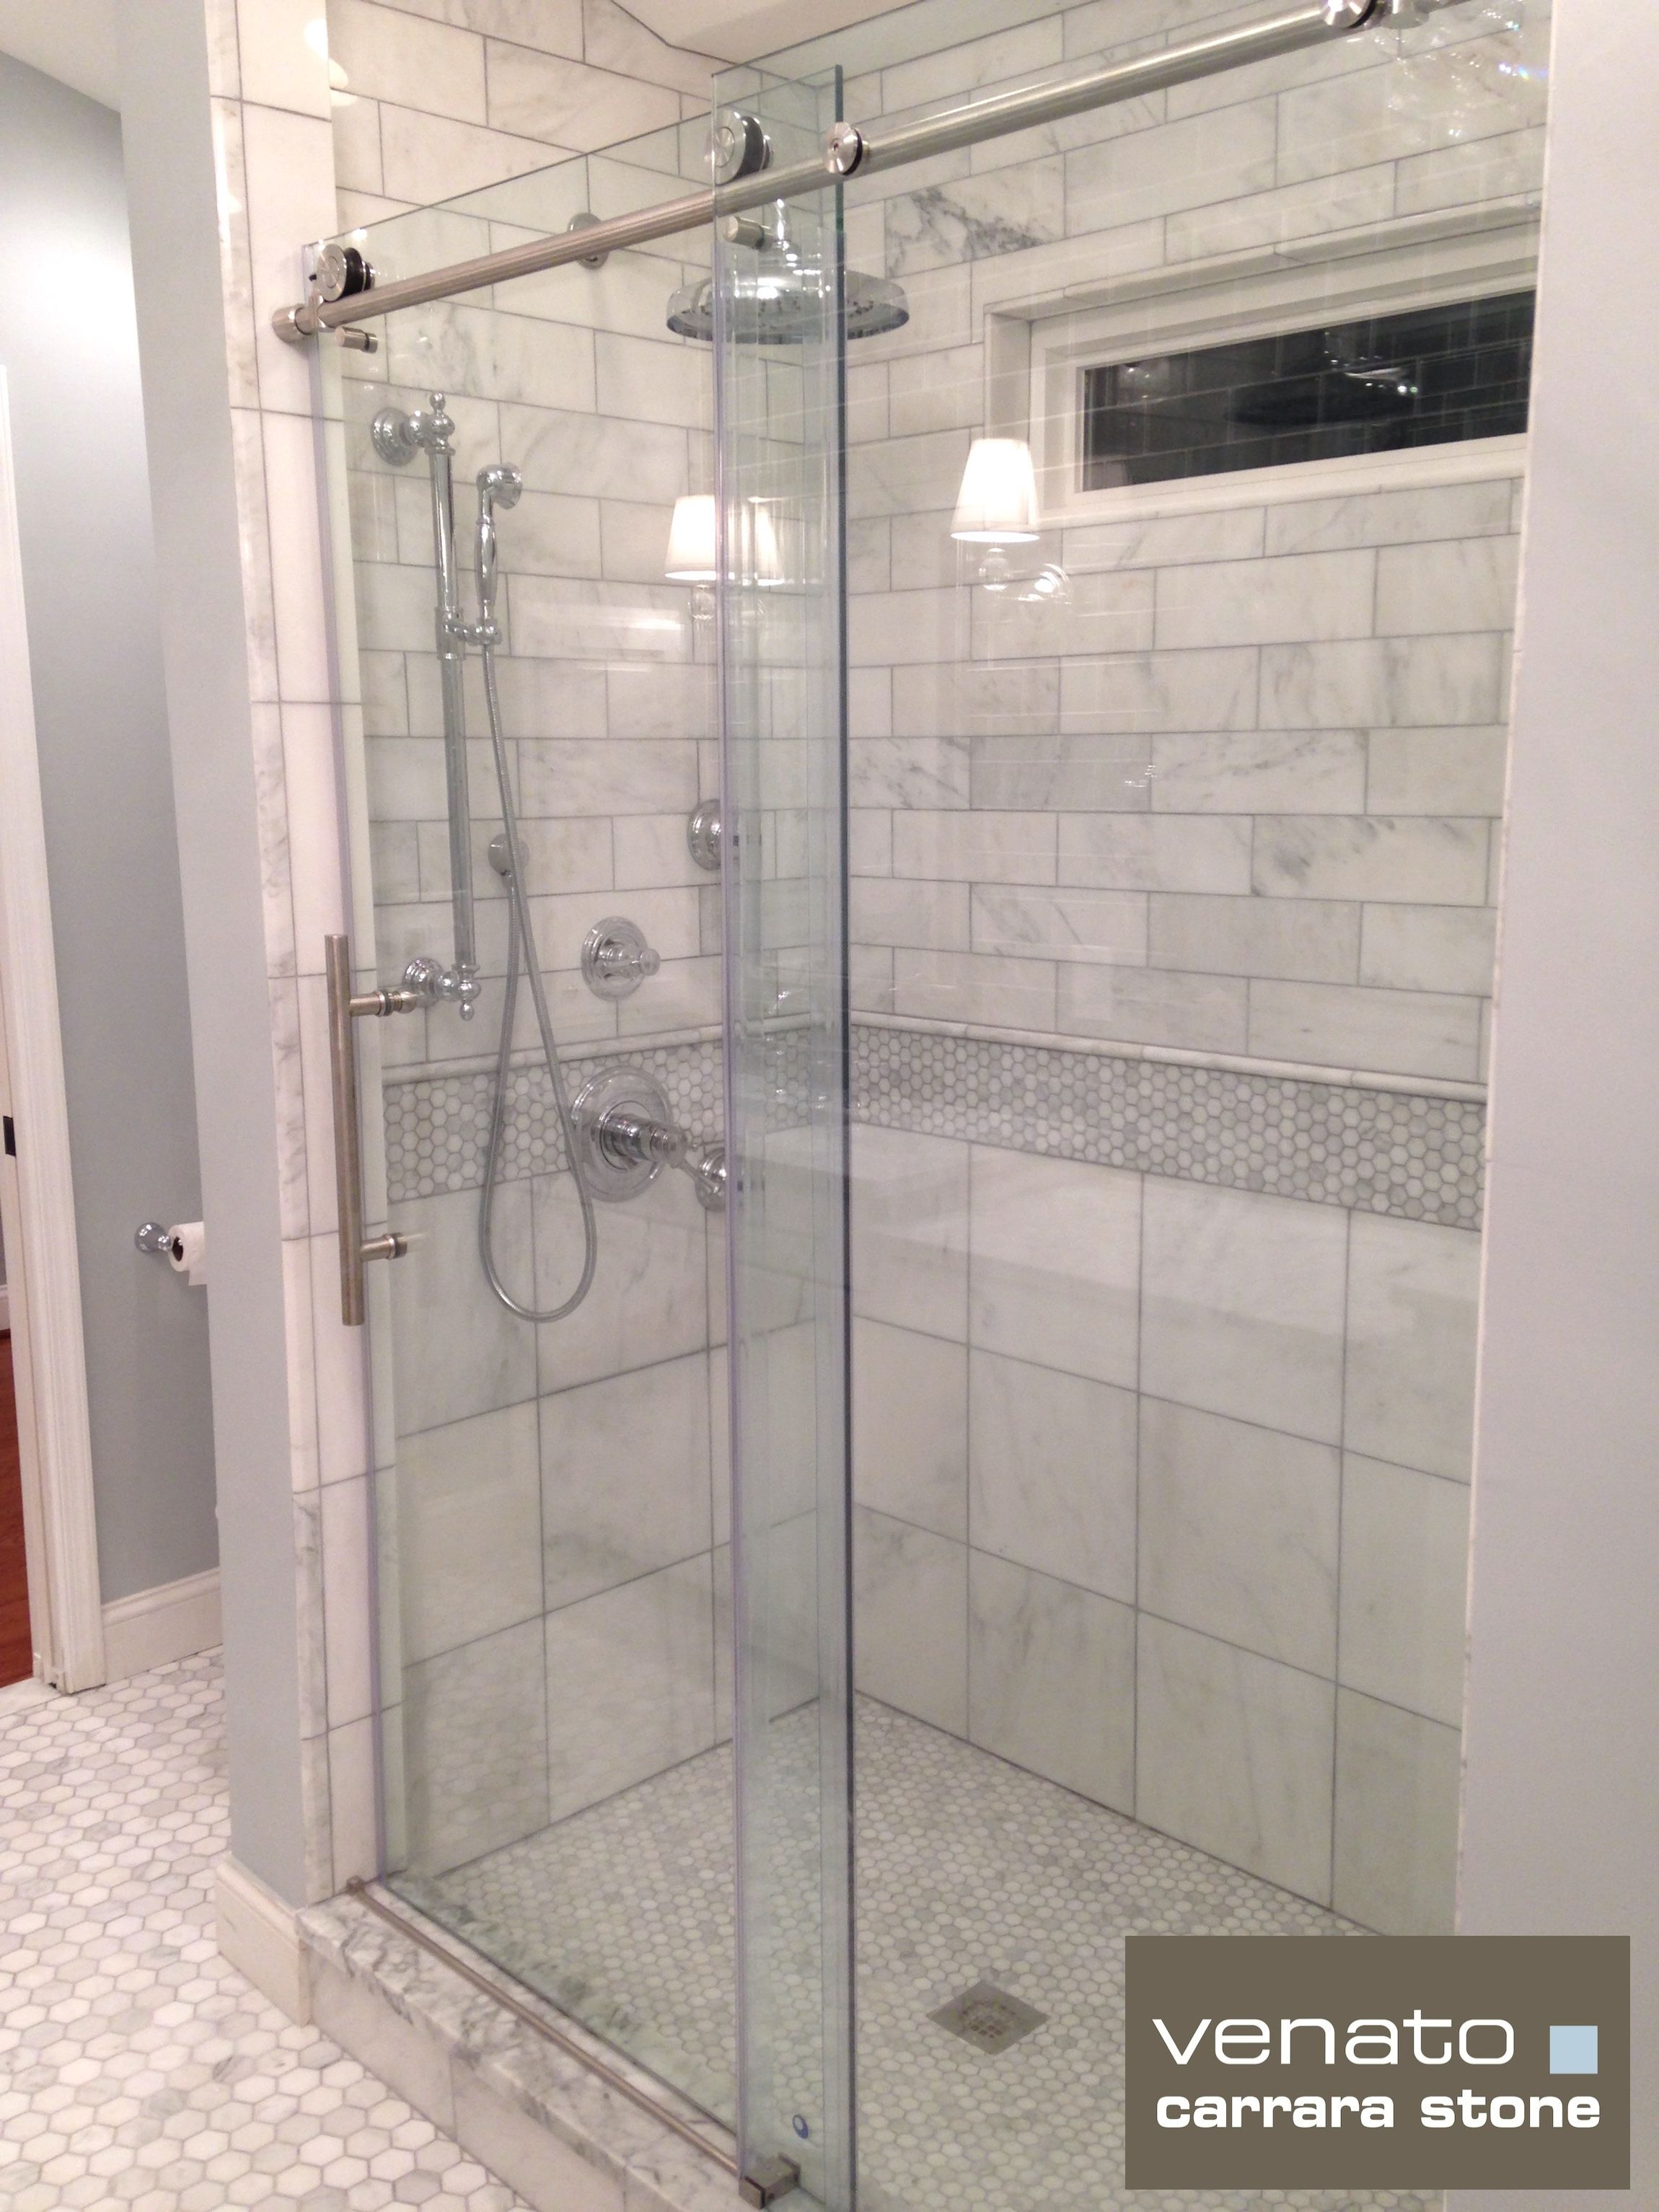 carrara tile bathroom carrara venato bathroom tiles used are 12x12 quot for 7 00sf 12243